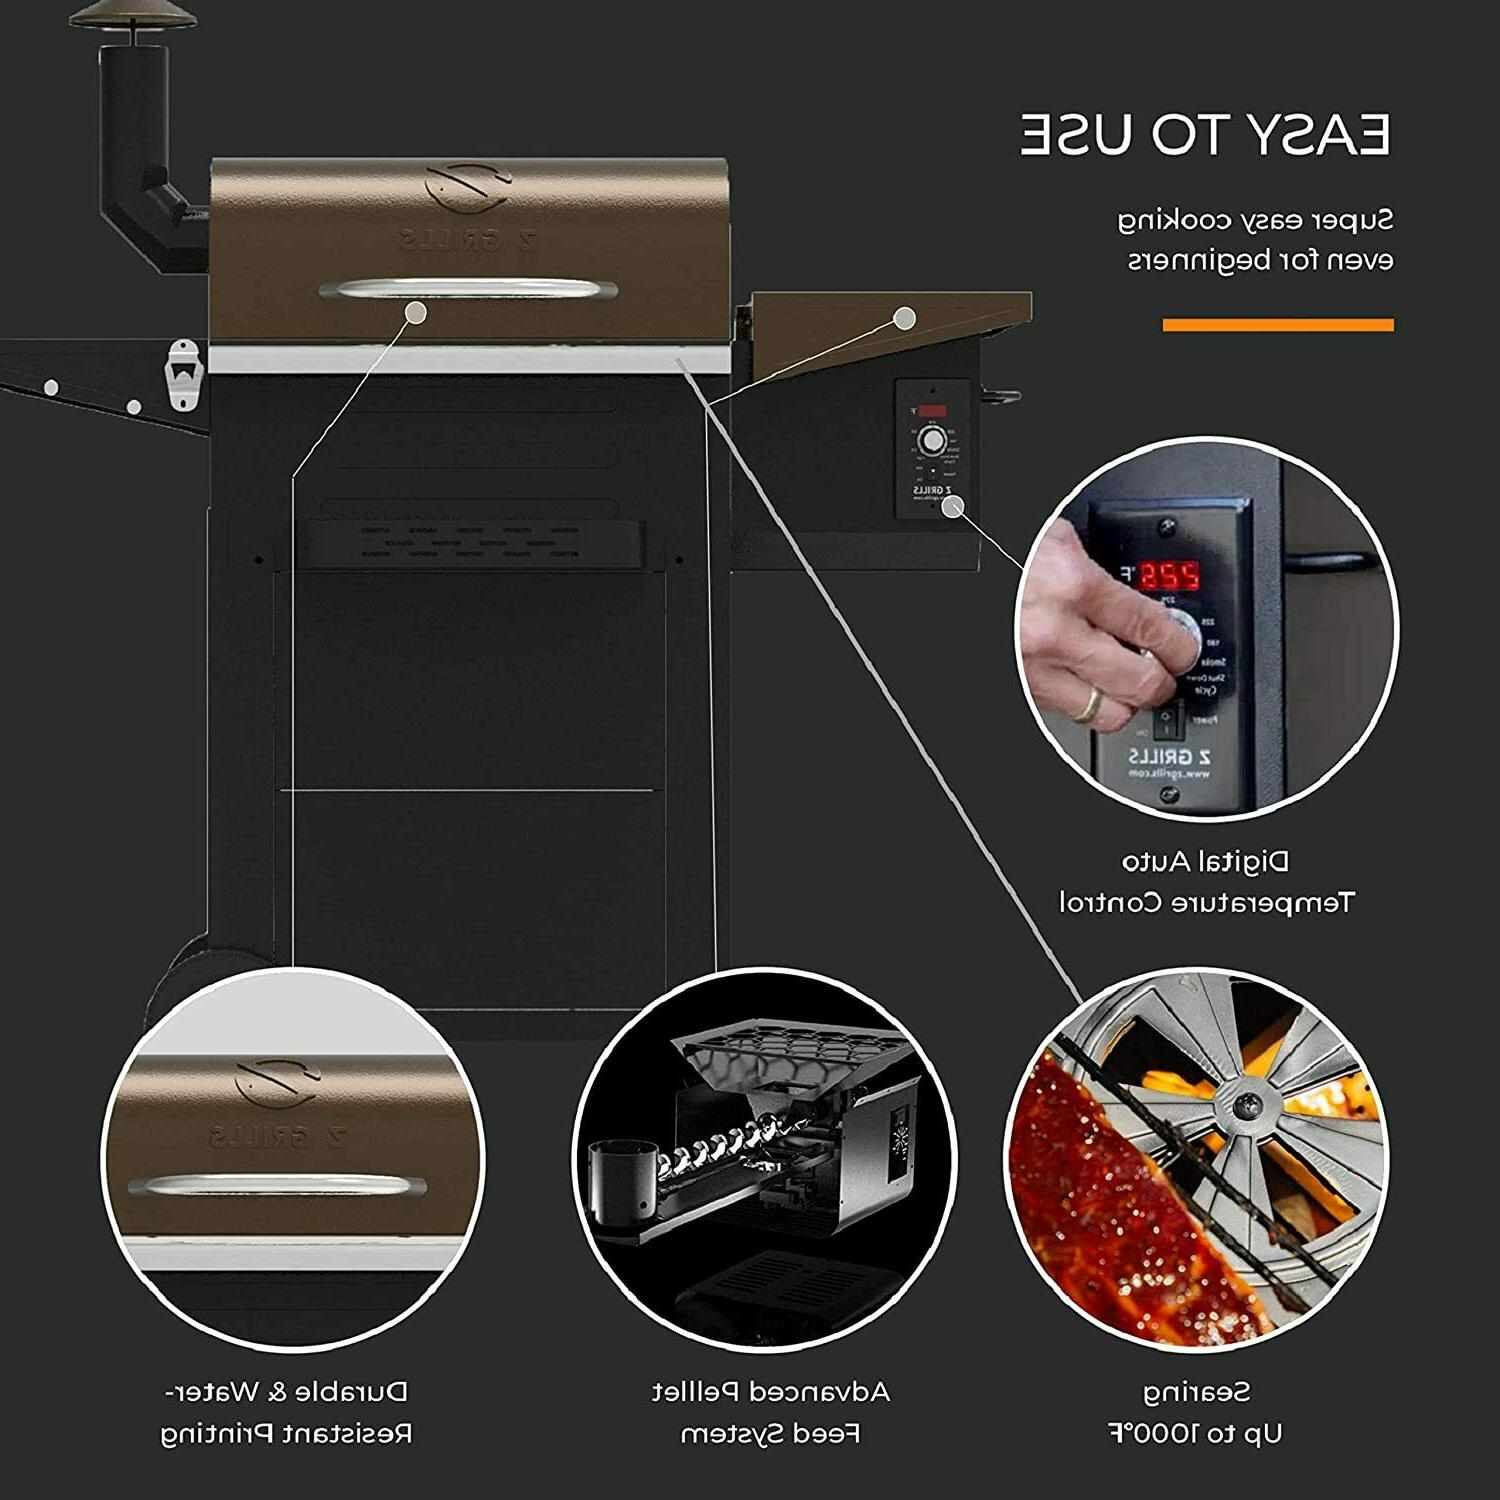 Z Grills Grills 600 Cooking 8- Bake,